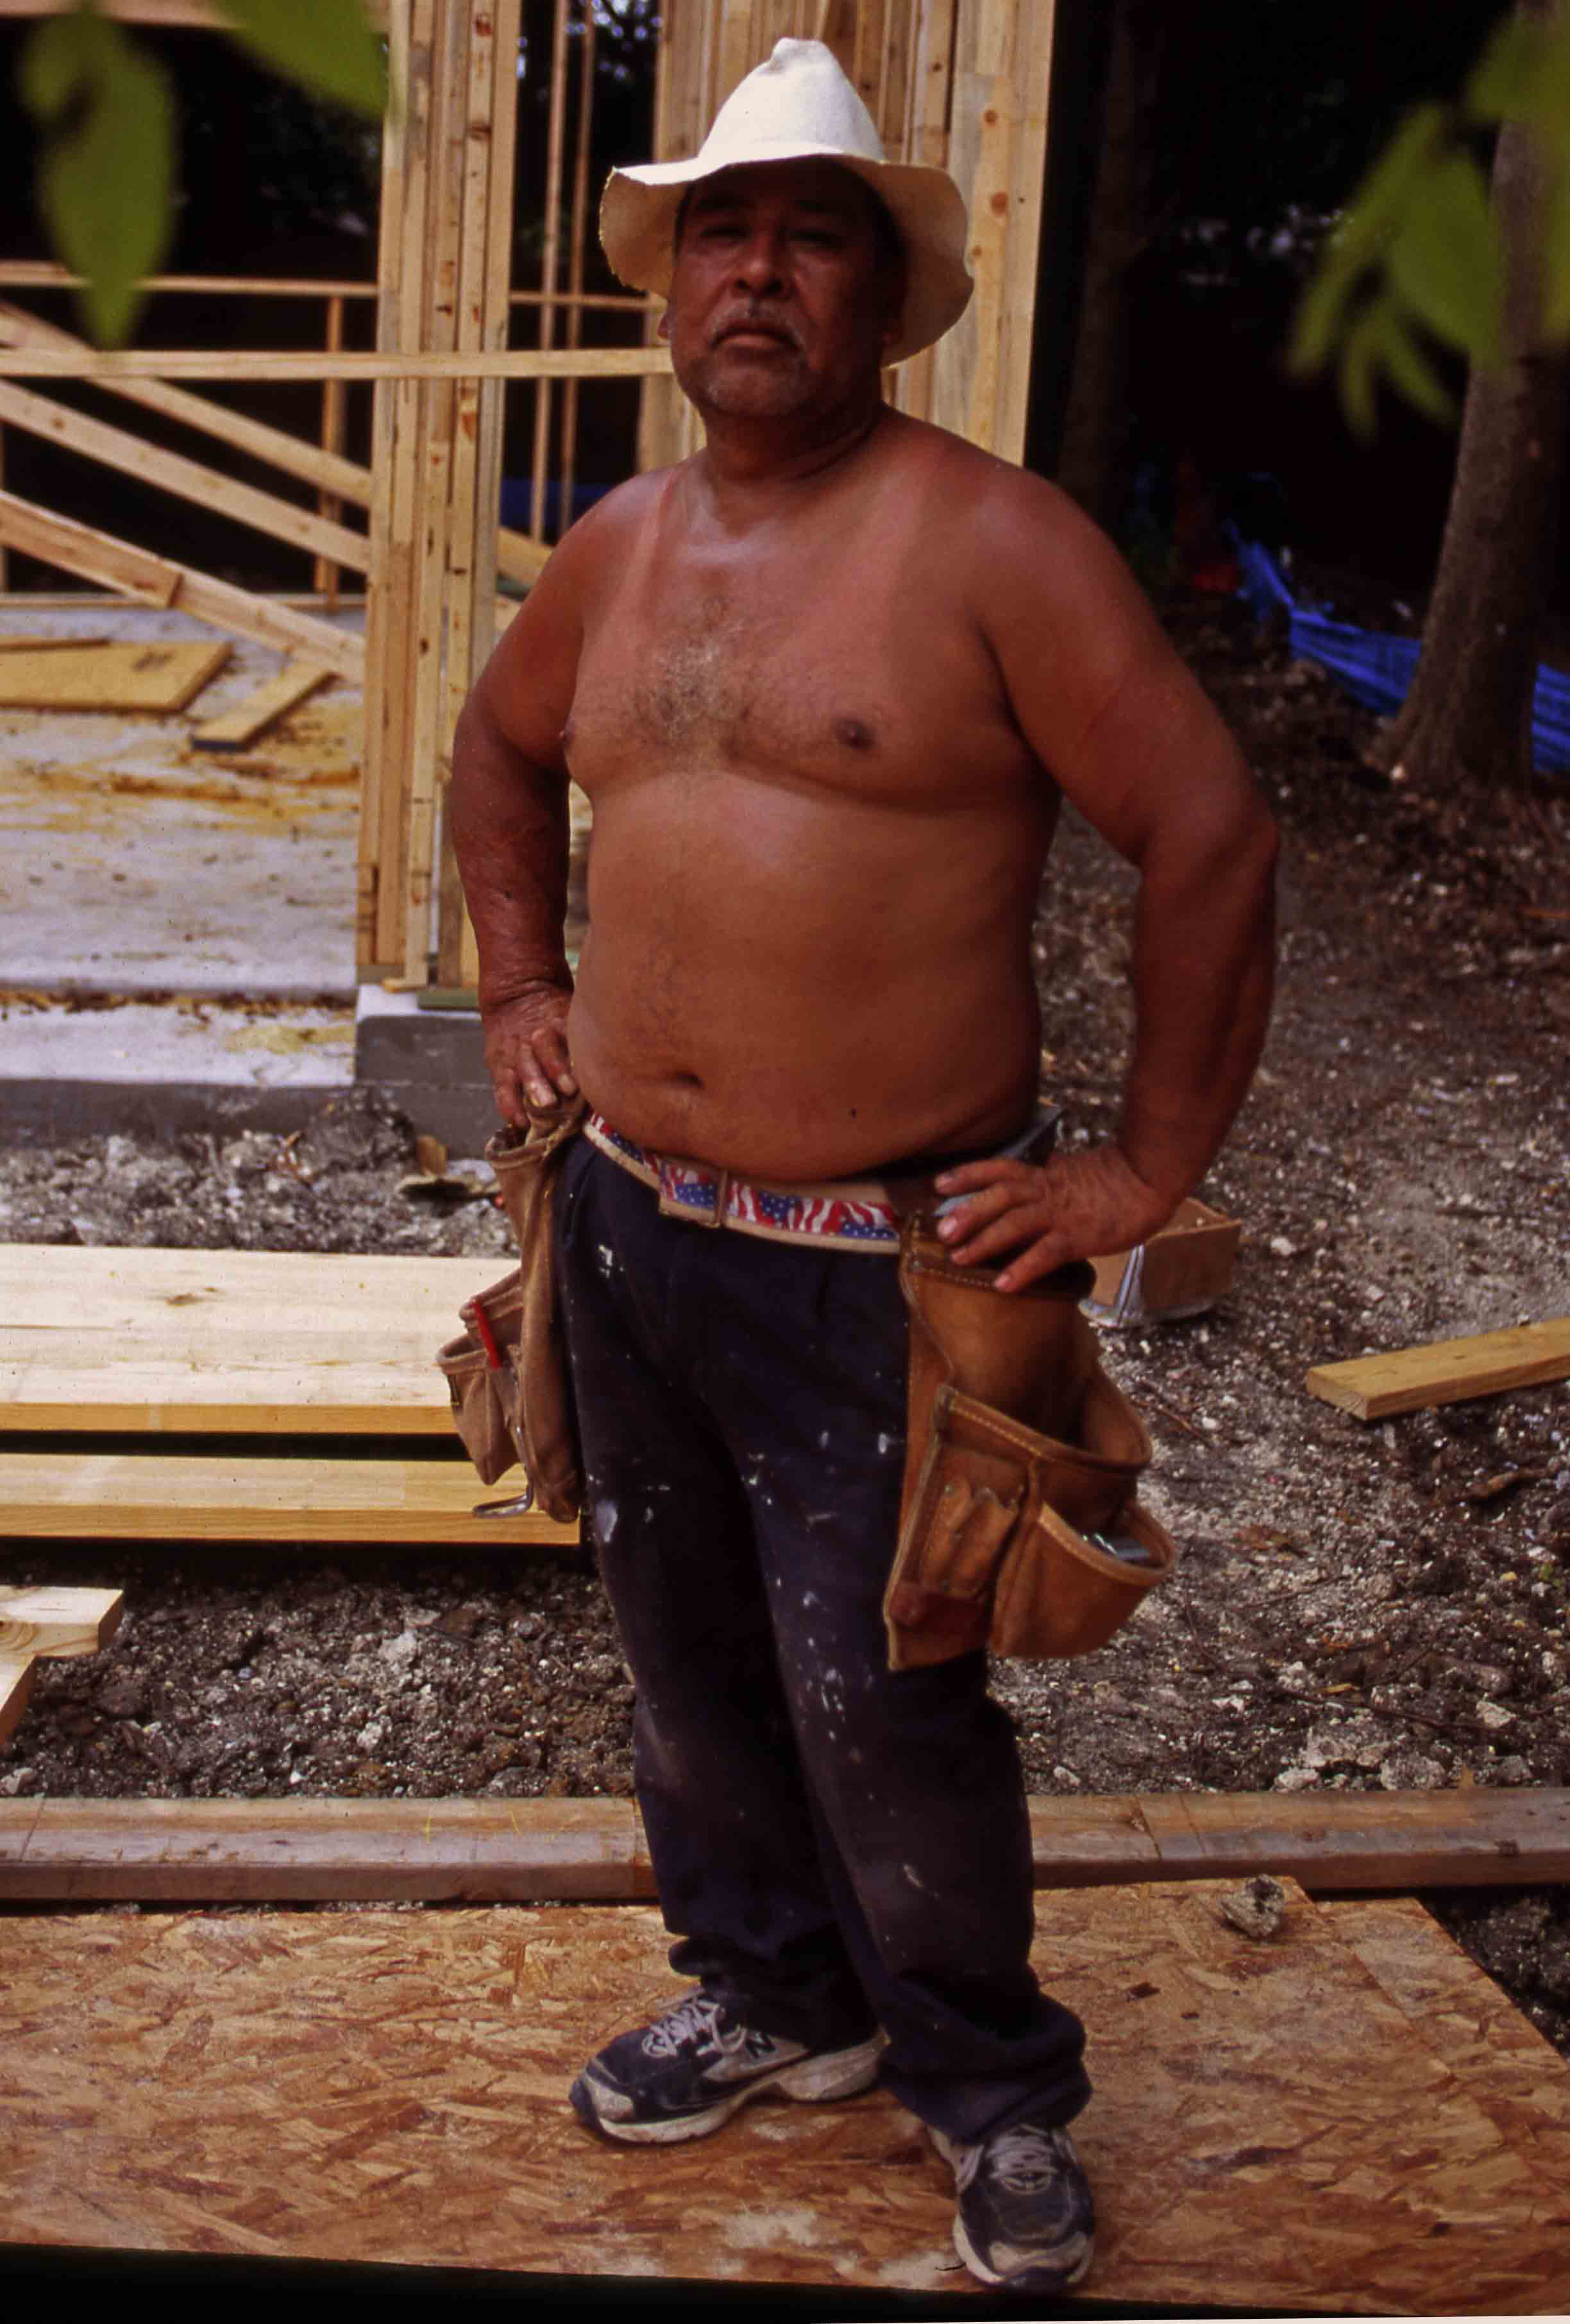 Shirtless Worker v1.jpg